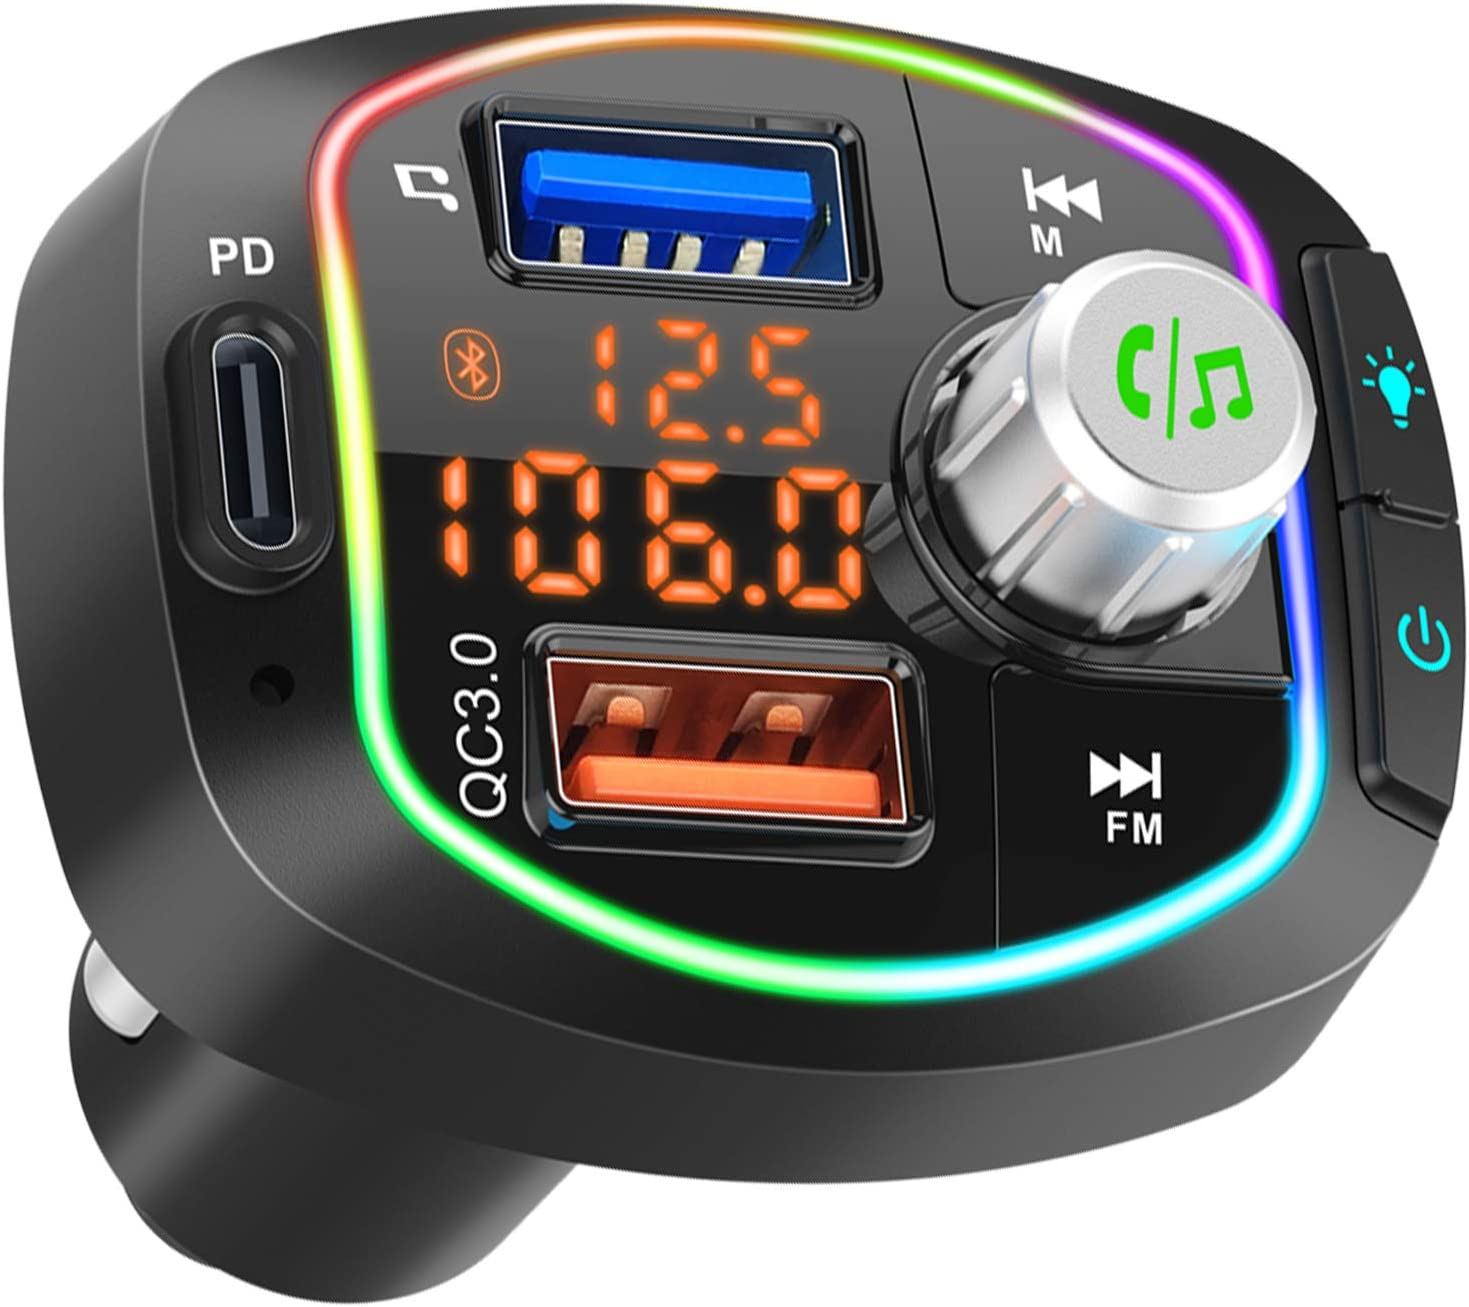 Bluetooth FM Transmitter for Car BT 5.0 Wireless Stereo Audio Adapter Hands-Free Call Kit Radio Music Player Receiver 36W PD /& QC3.0 Smart Charge Type-C USB TF Compatible LCD Dual Display RGB Light